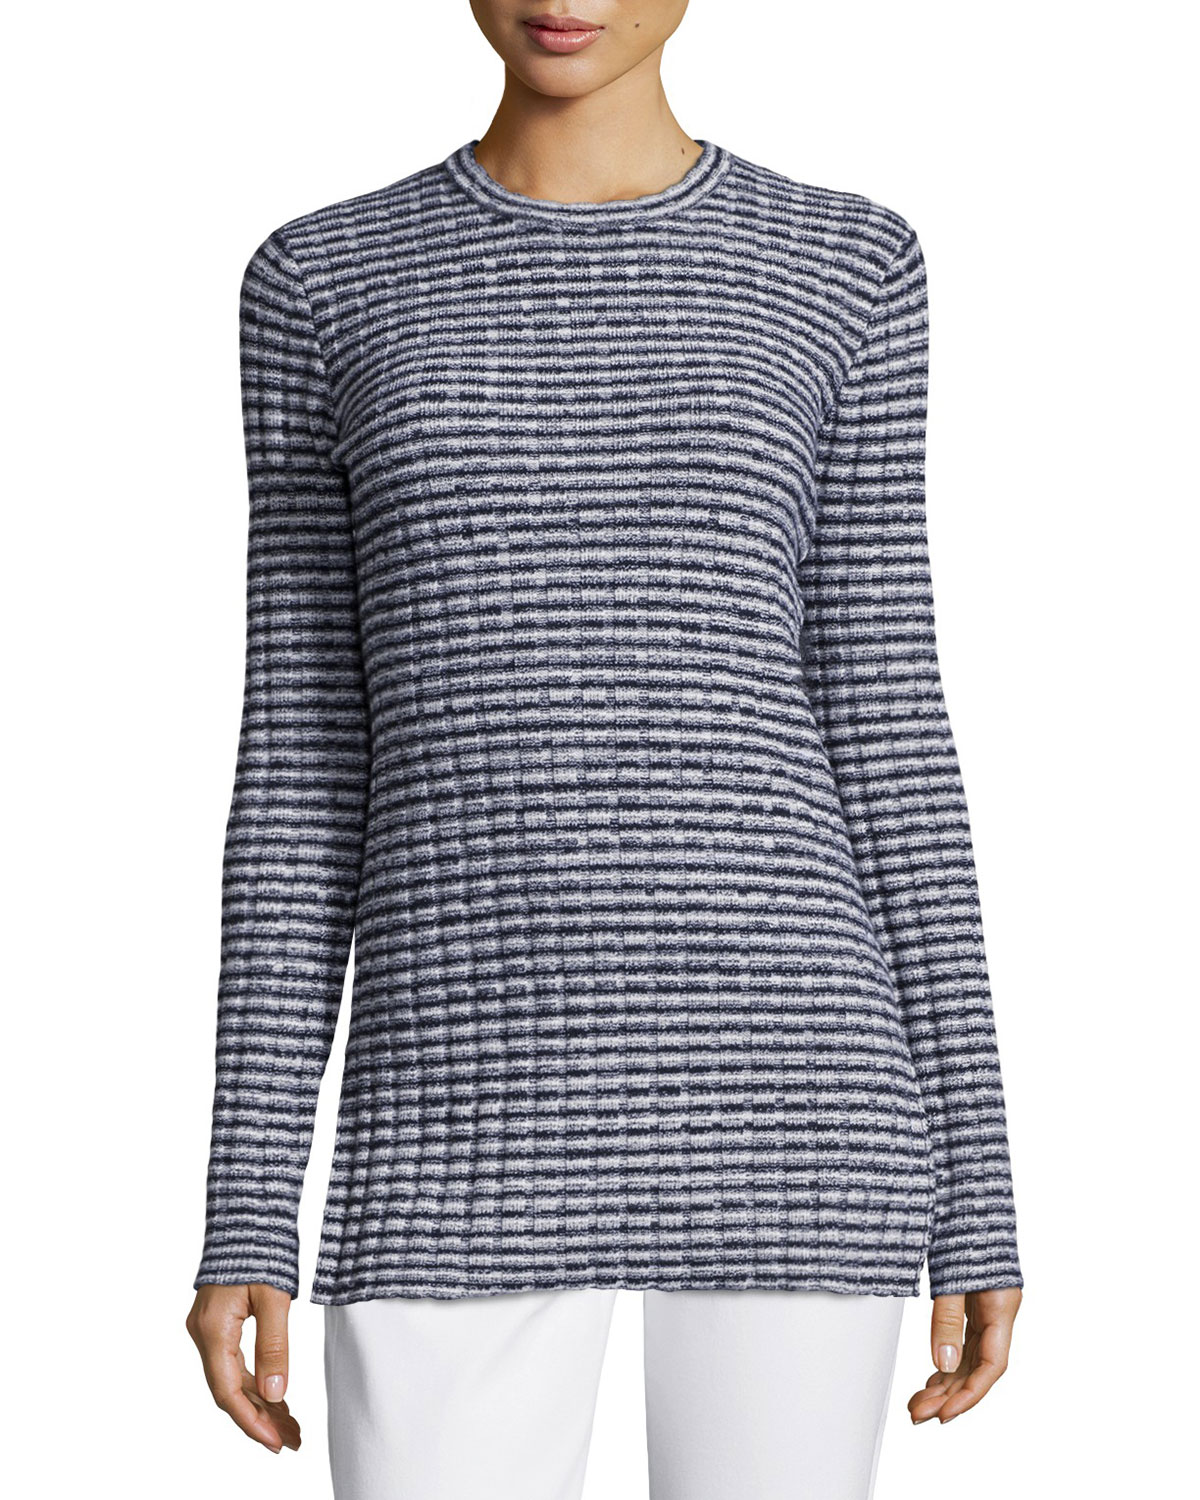 Belira Evian Textured Stripe Top